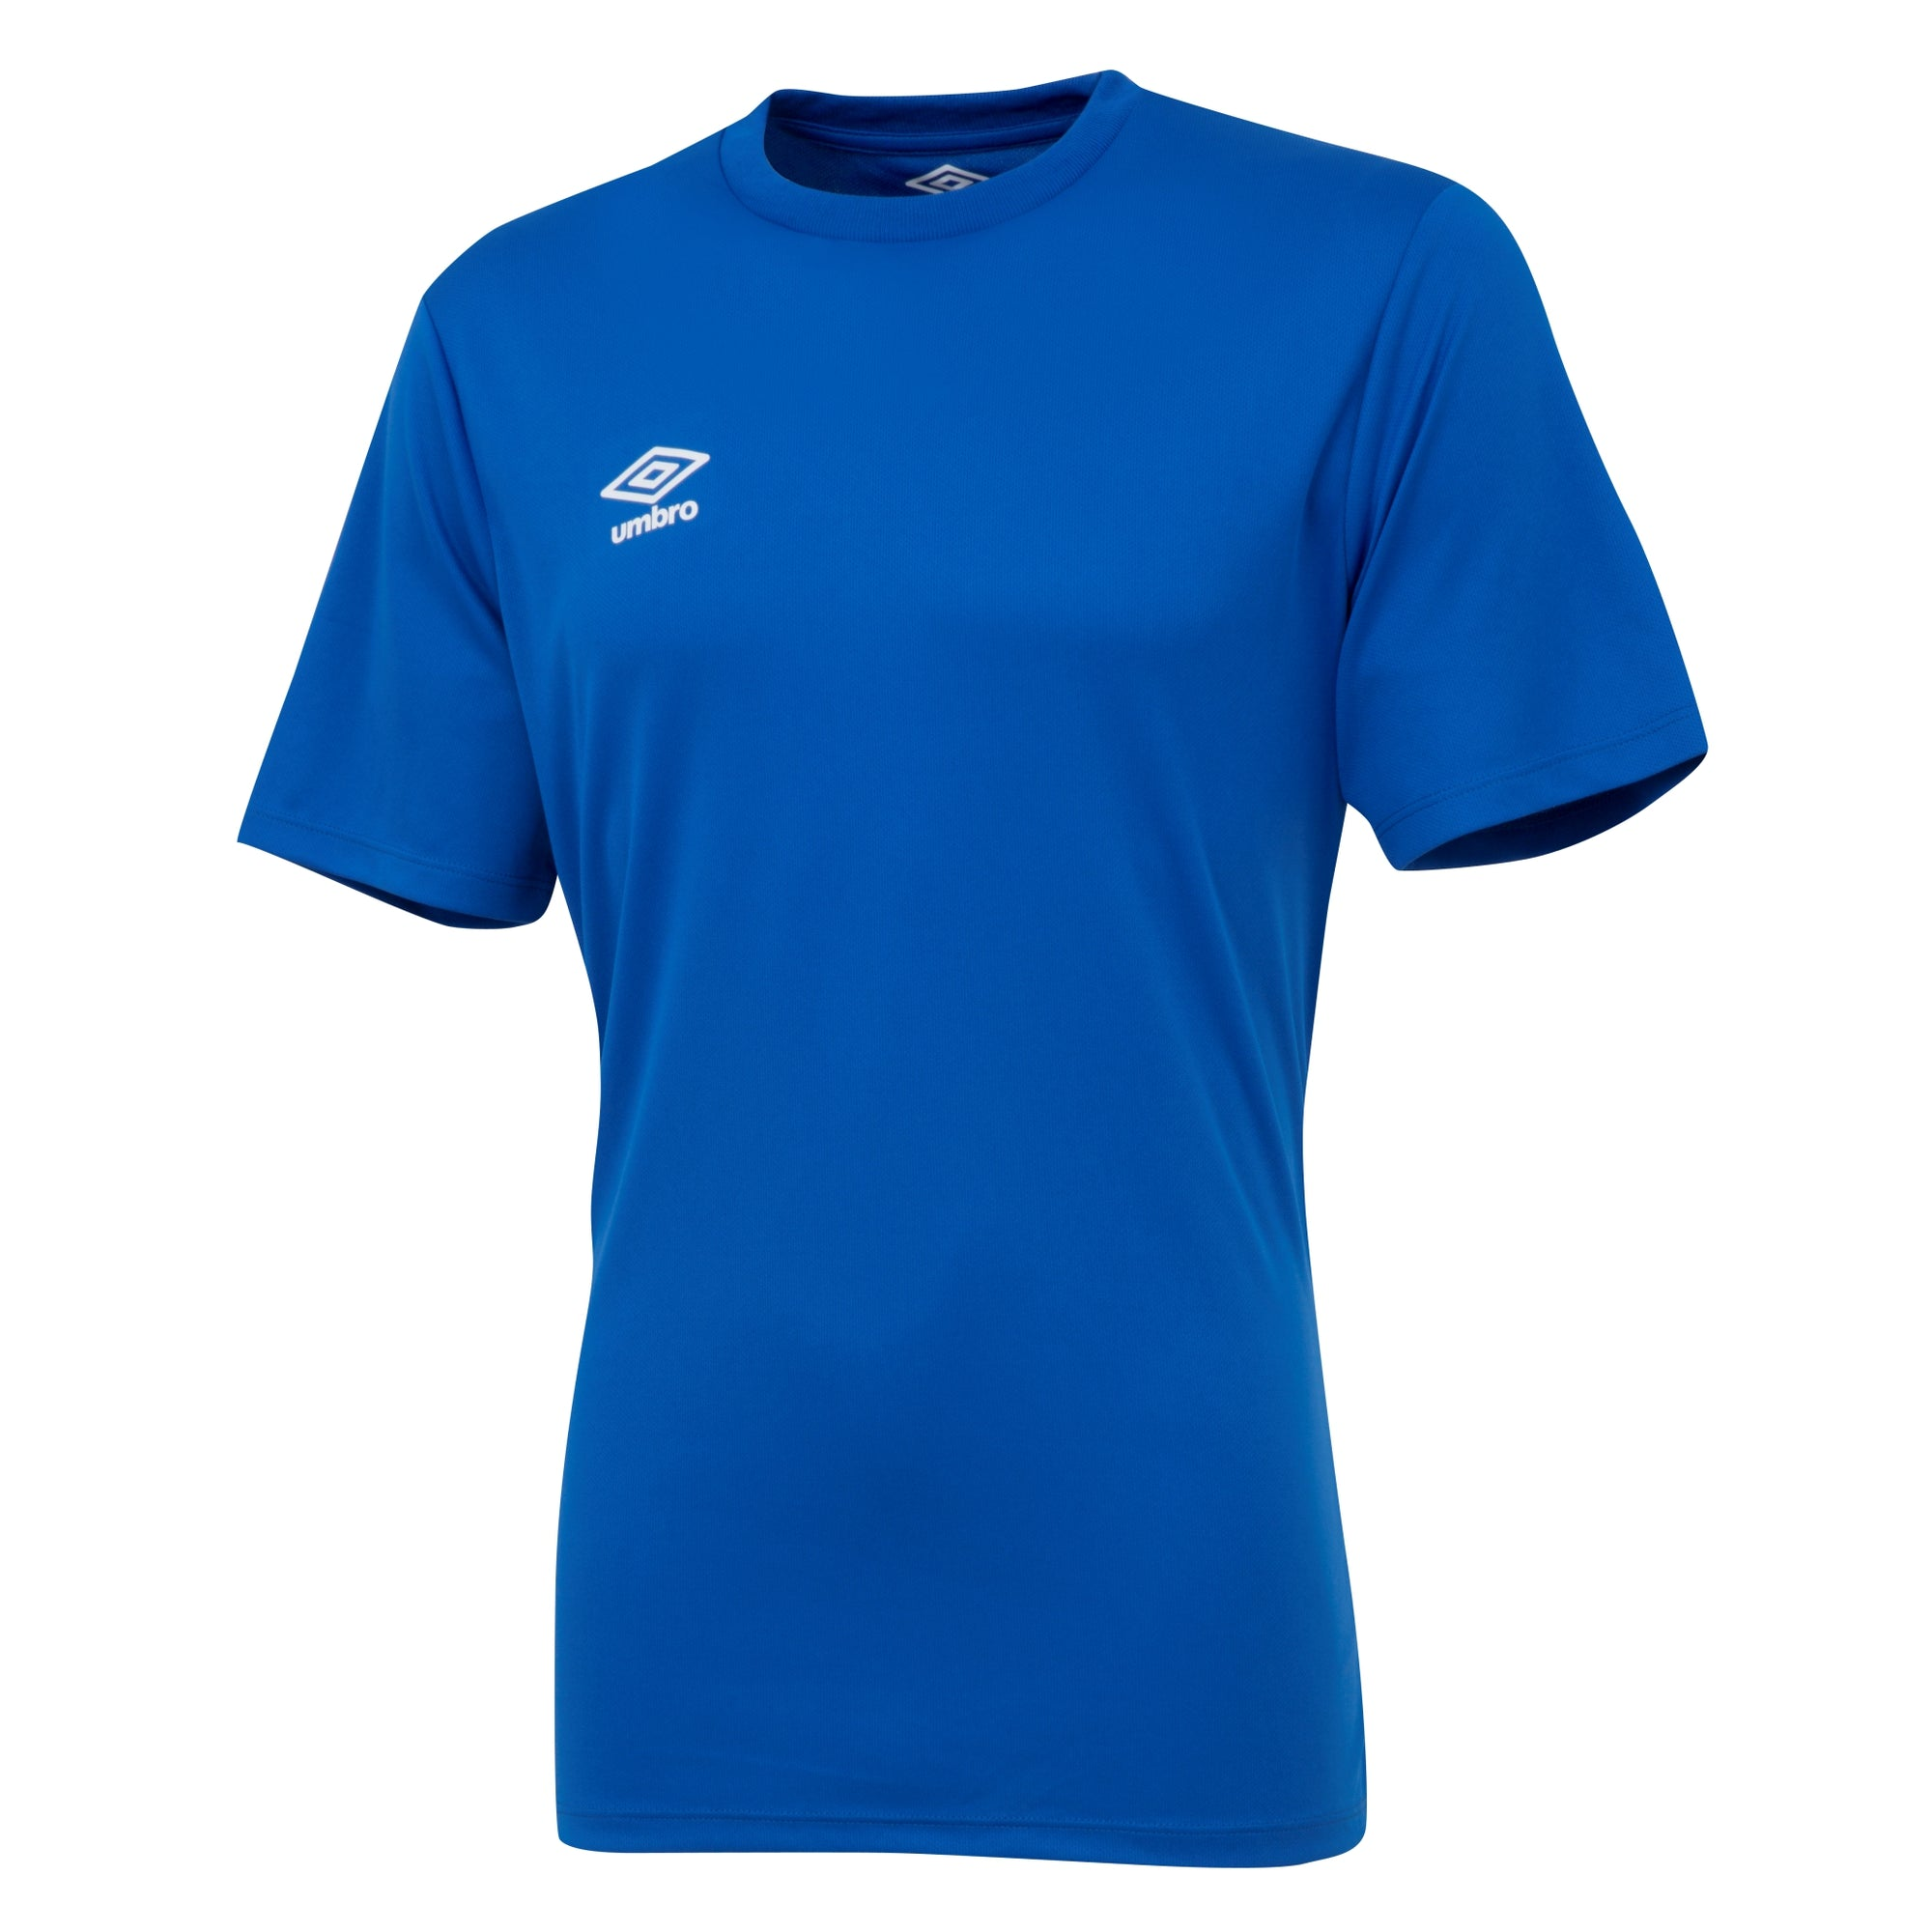 Umbro short sleeve club jersey in royal blue with white printed Umbro logo